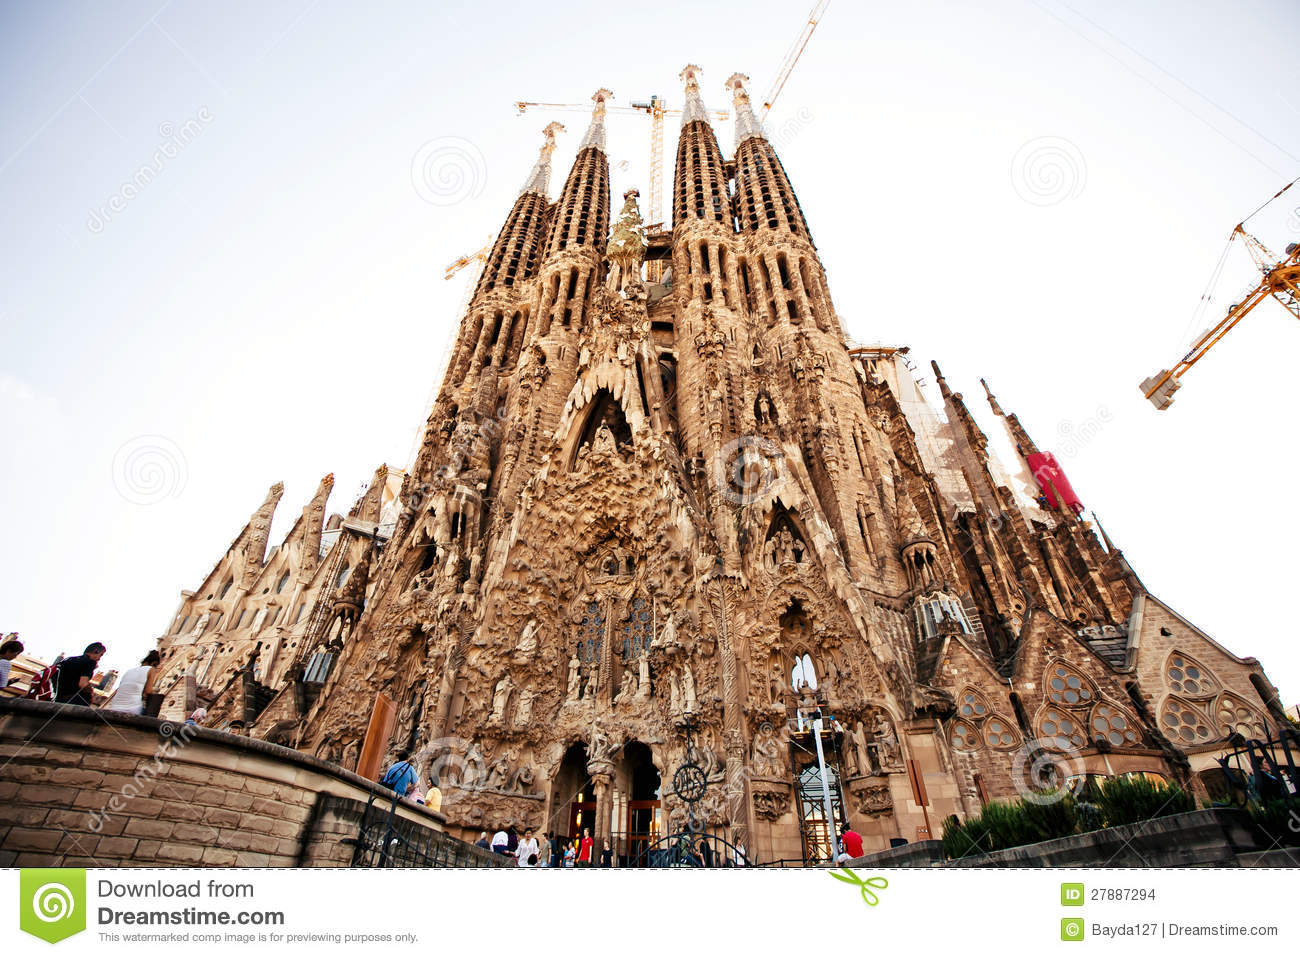 La sagrada familia in barcelona spain editorial stock for La sagrada familia barcelona spain